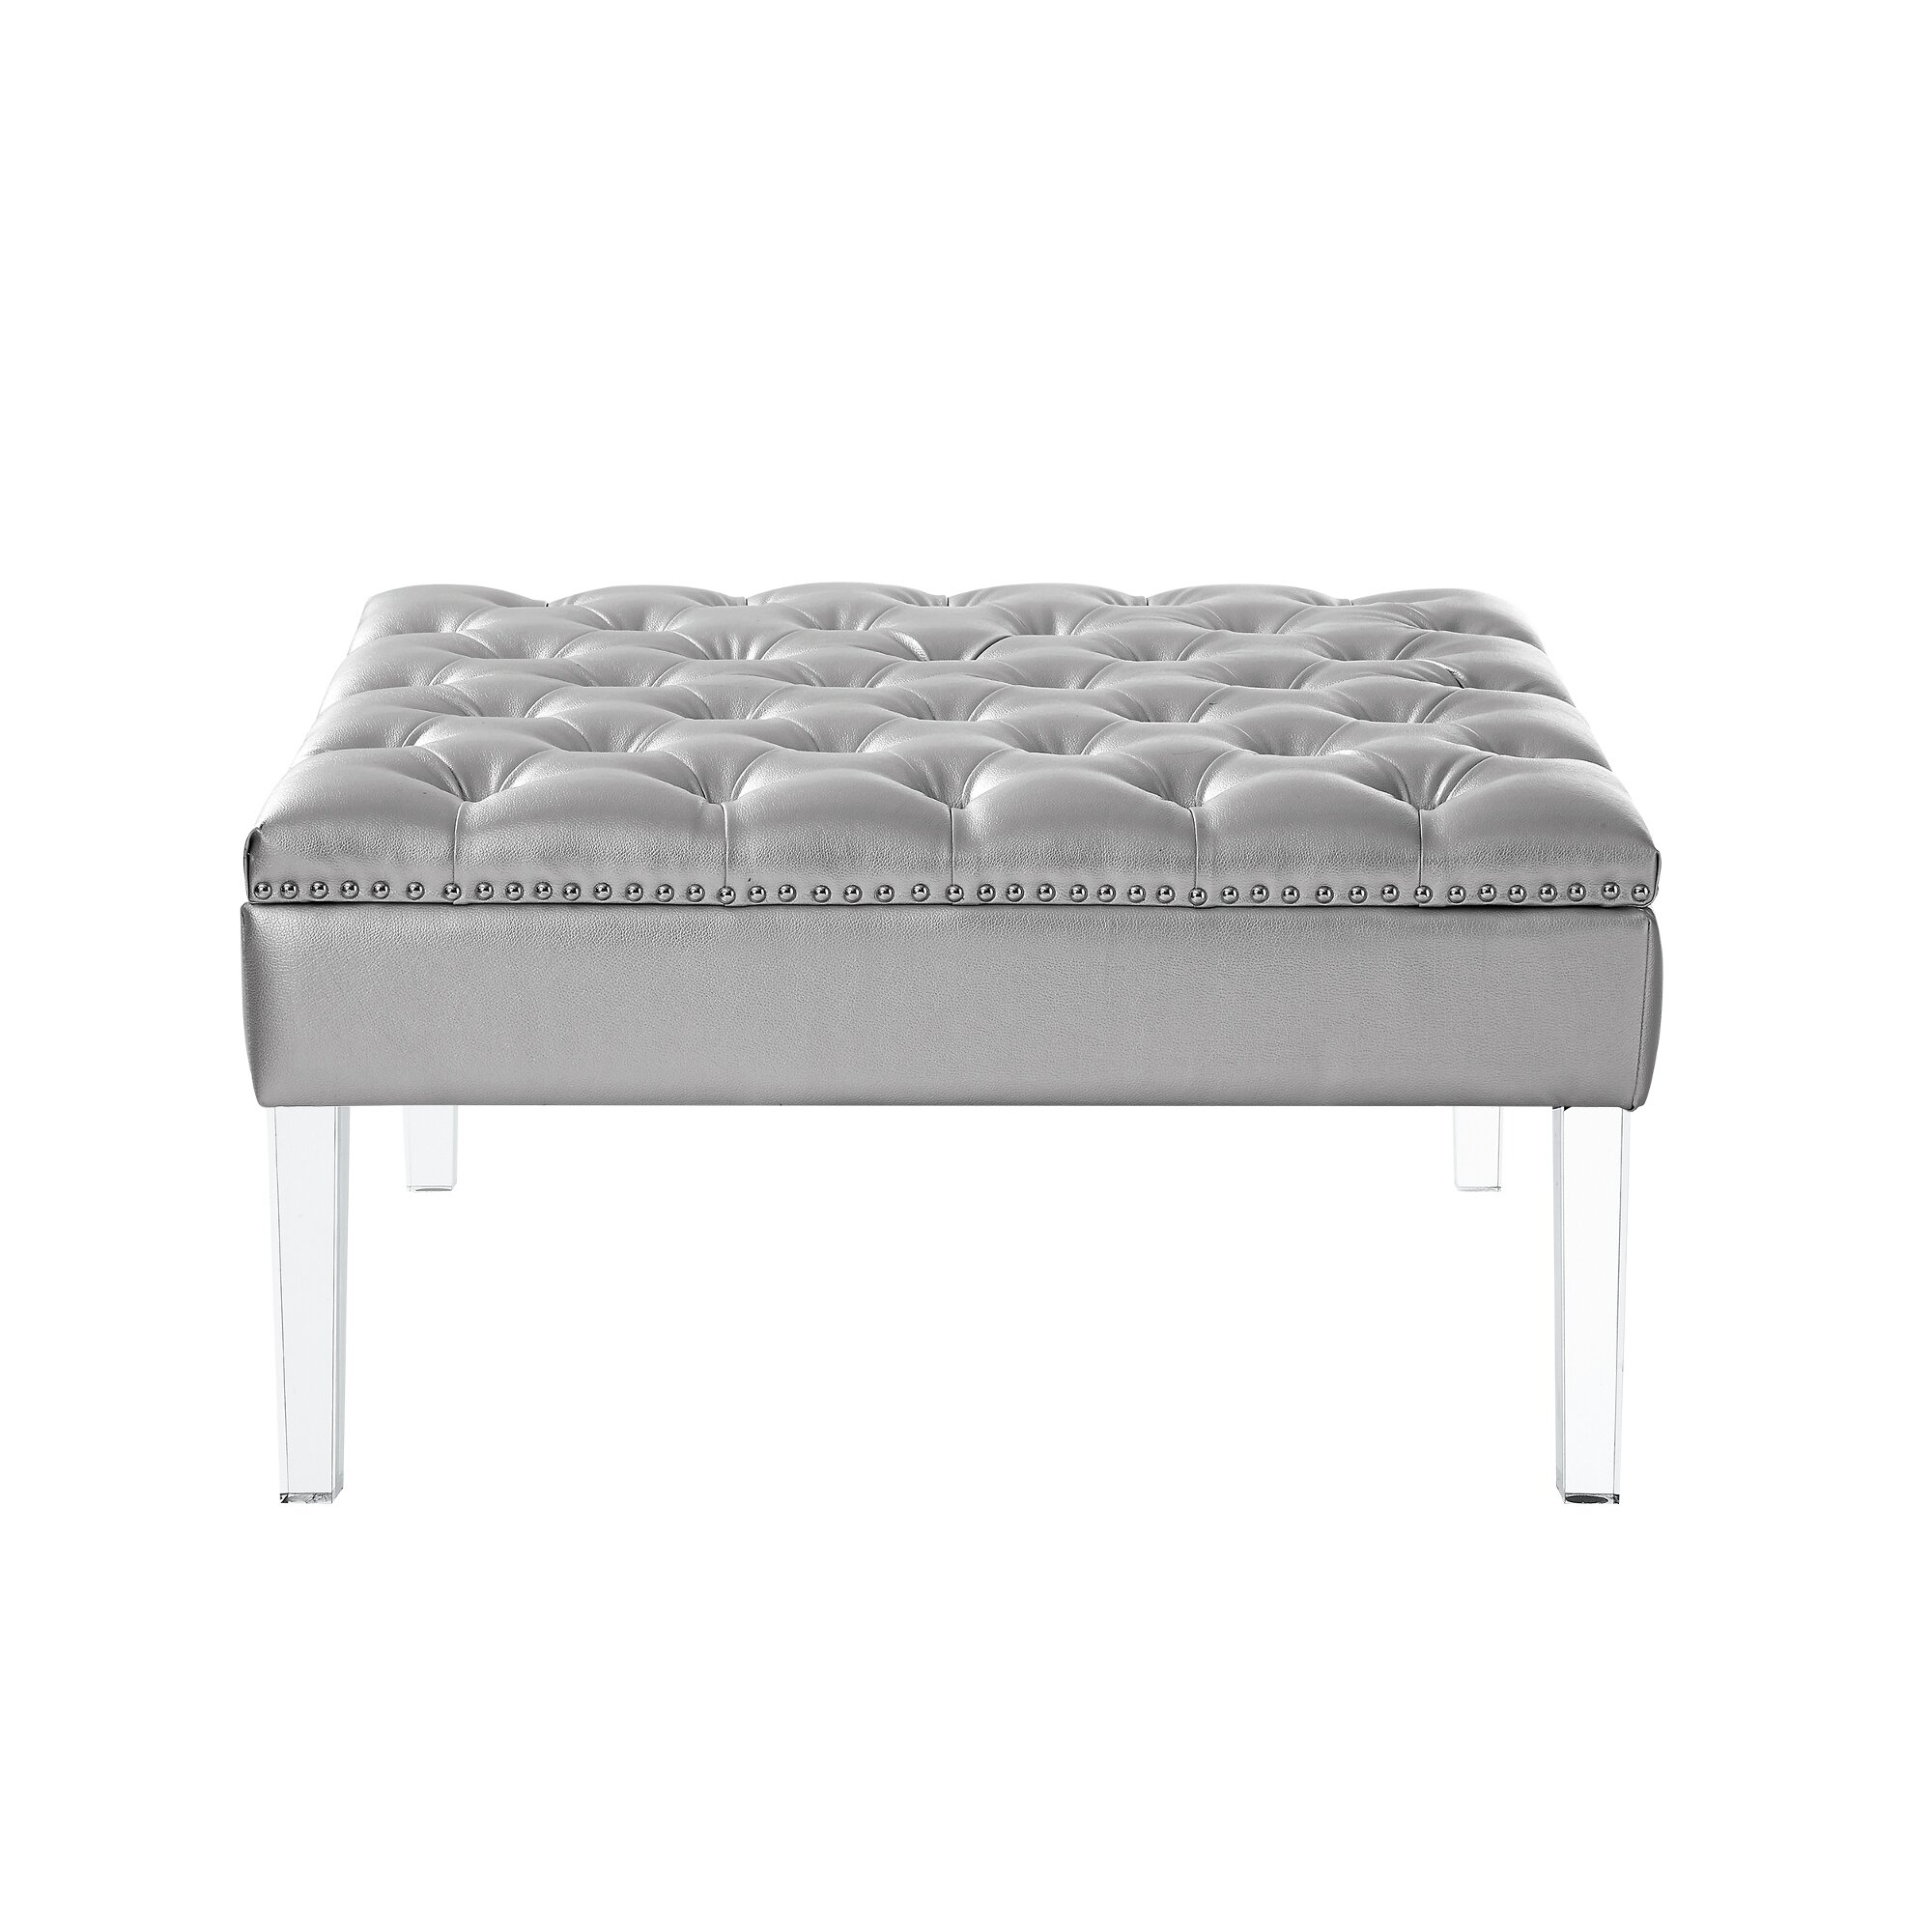 Admirable Meira Tufted Ottoman Caraccident5 Cool Chair Designs And Ideas Caraccident5Info